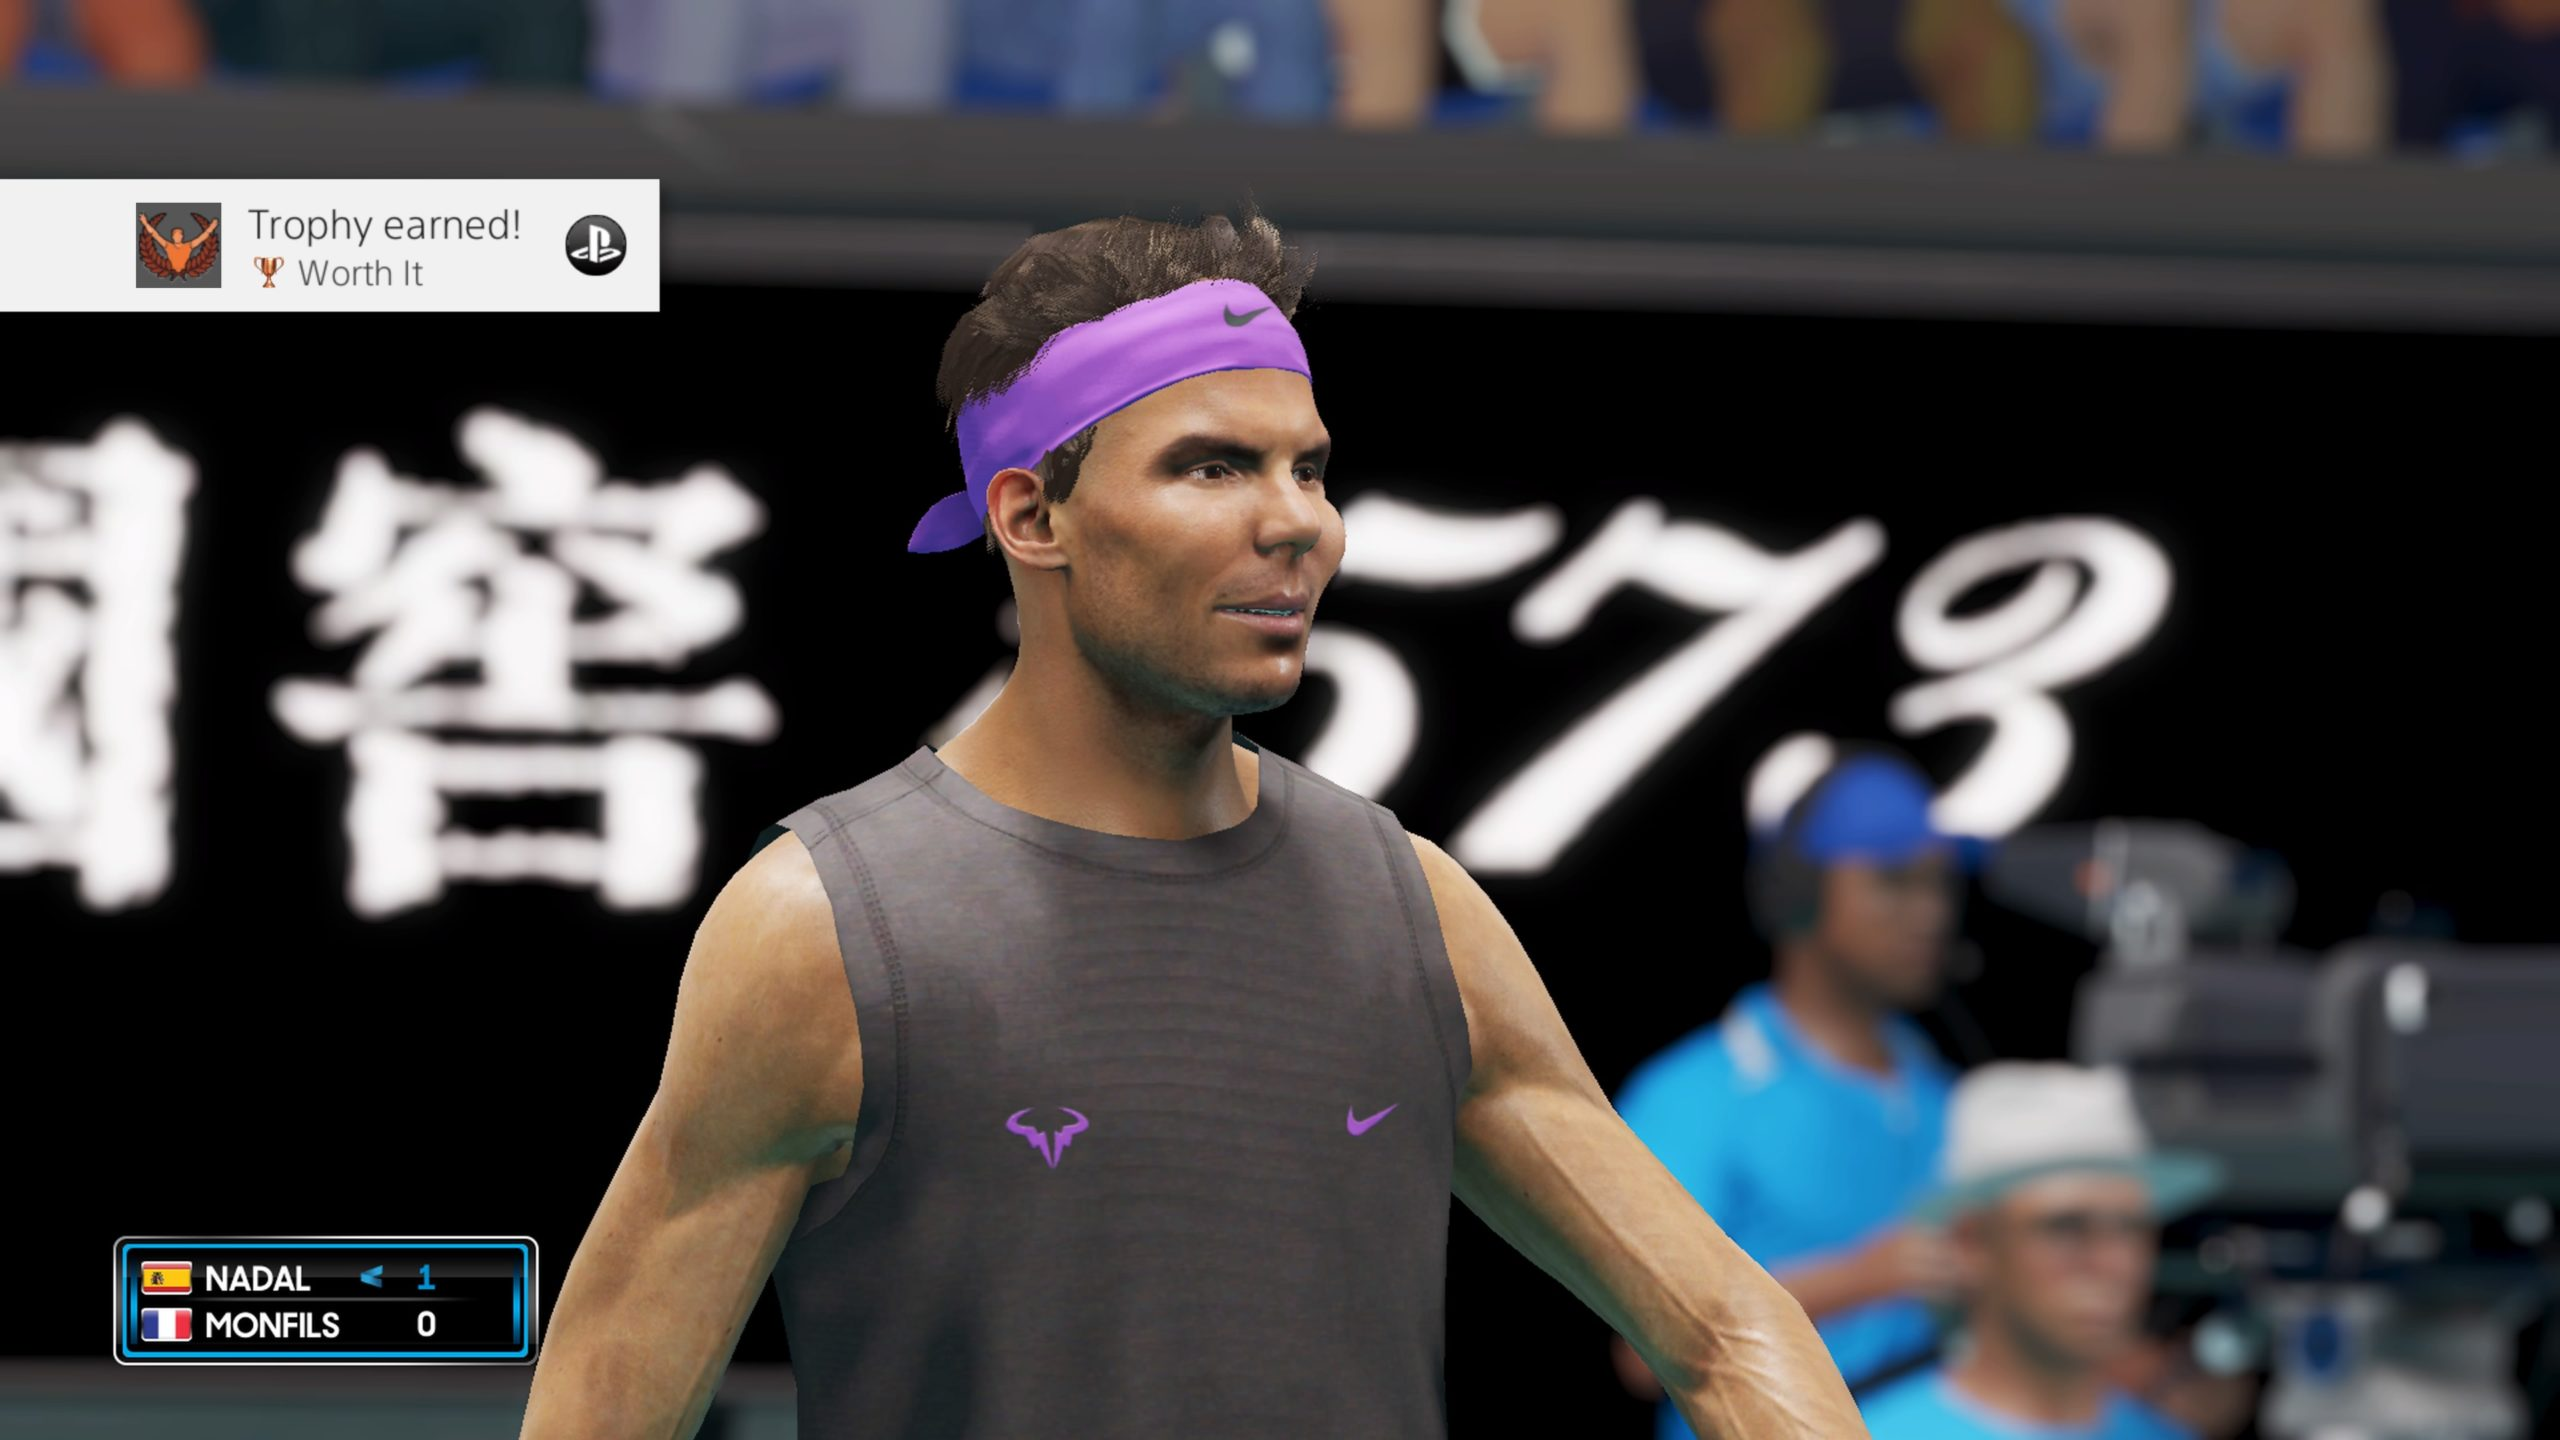 AO Tennis 2 Review – Ace Serve